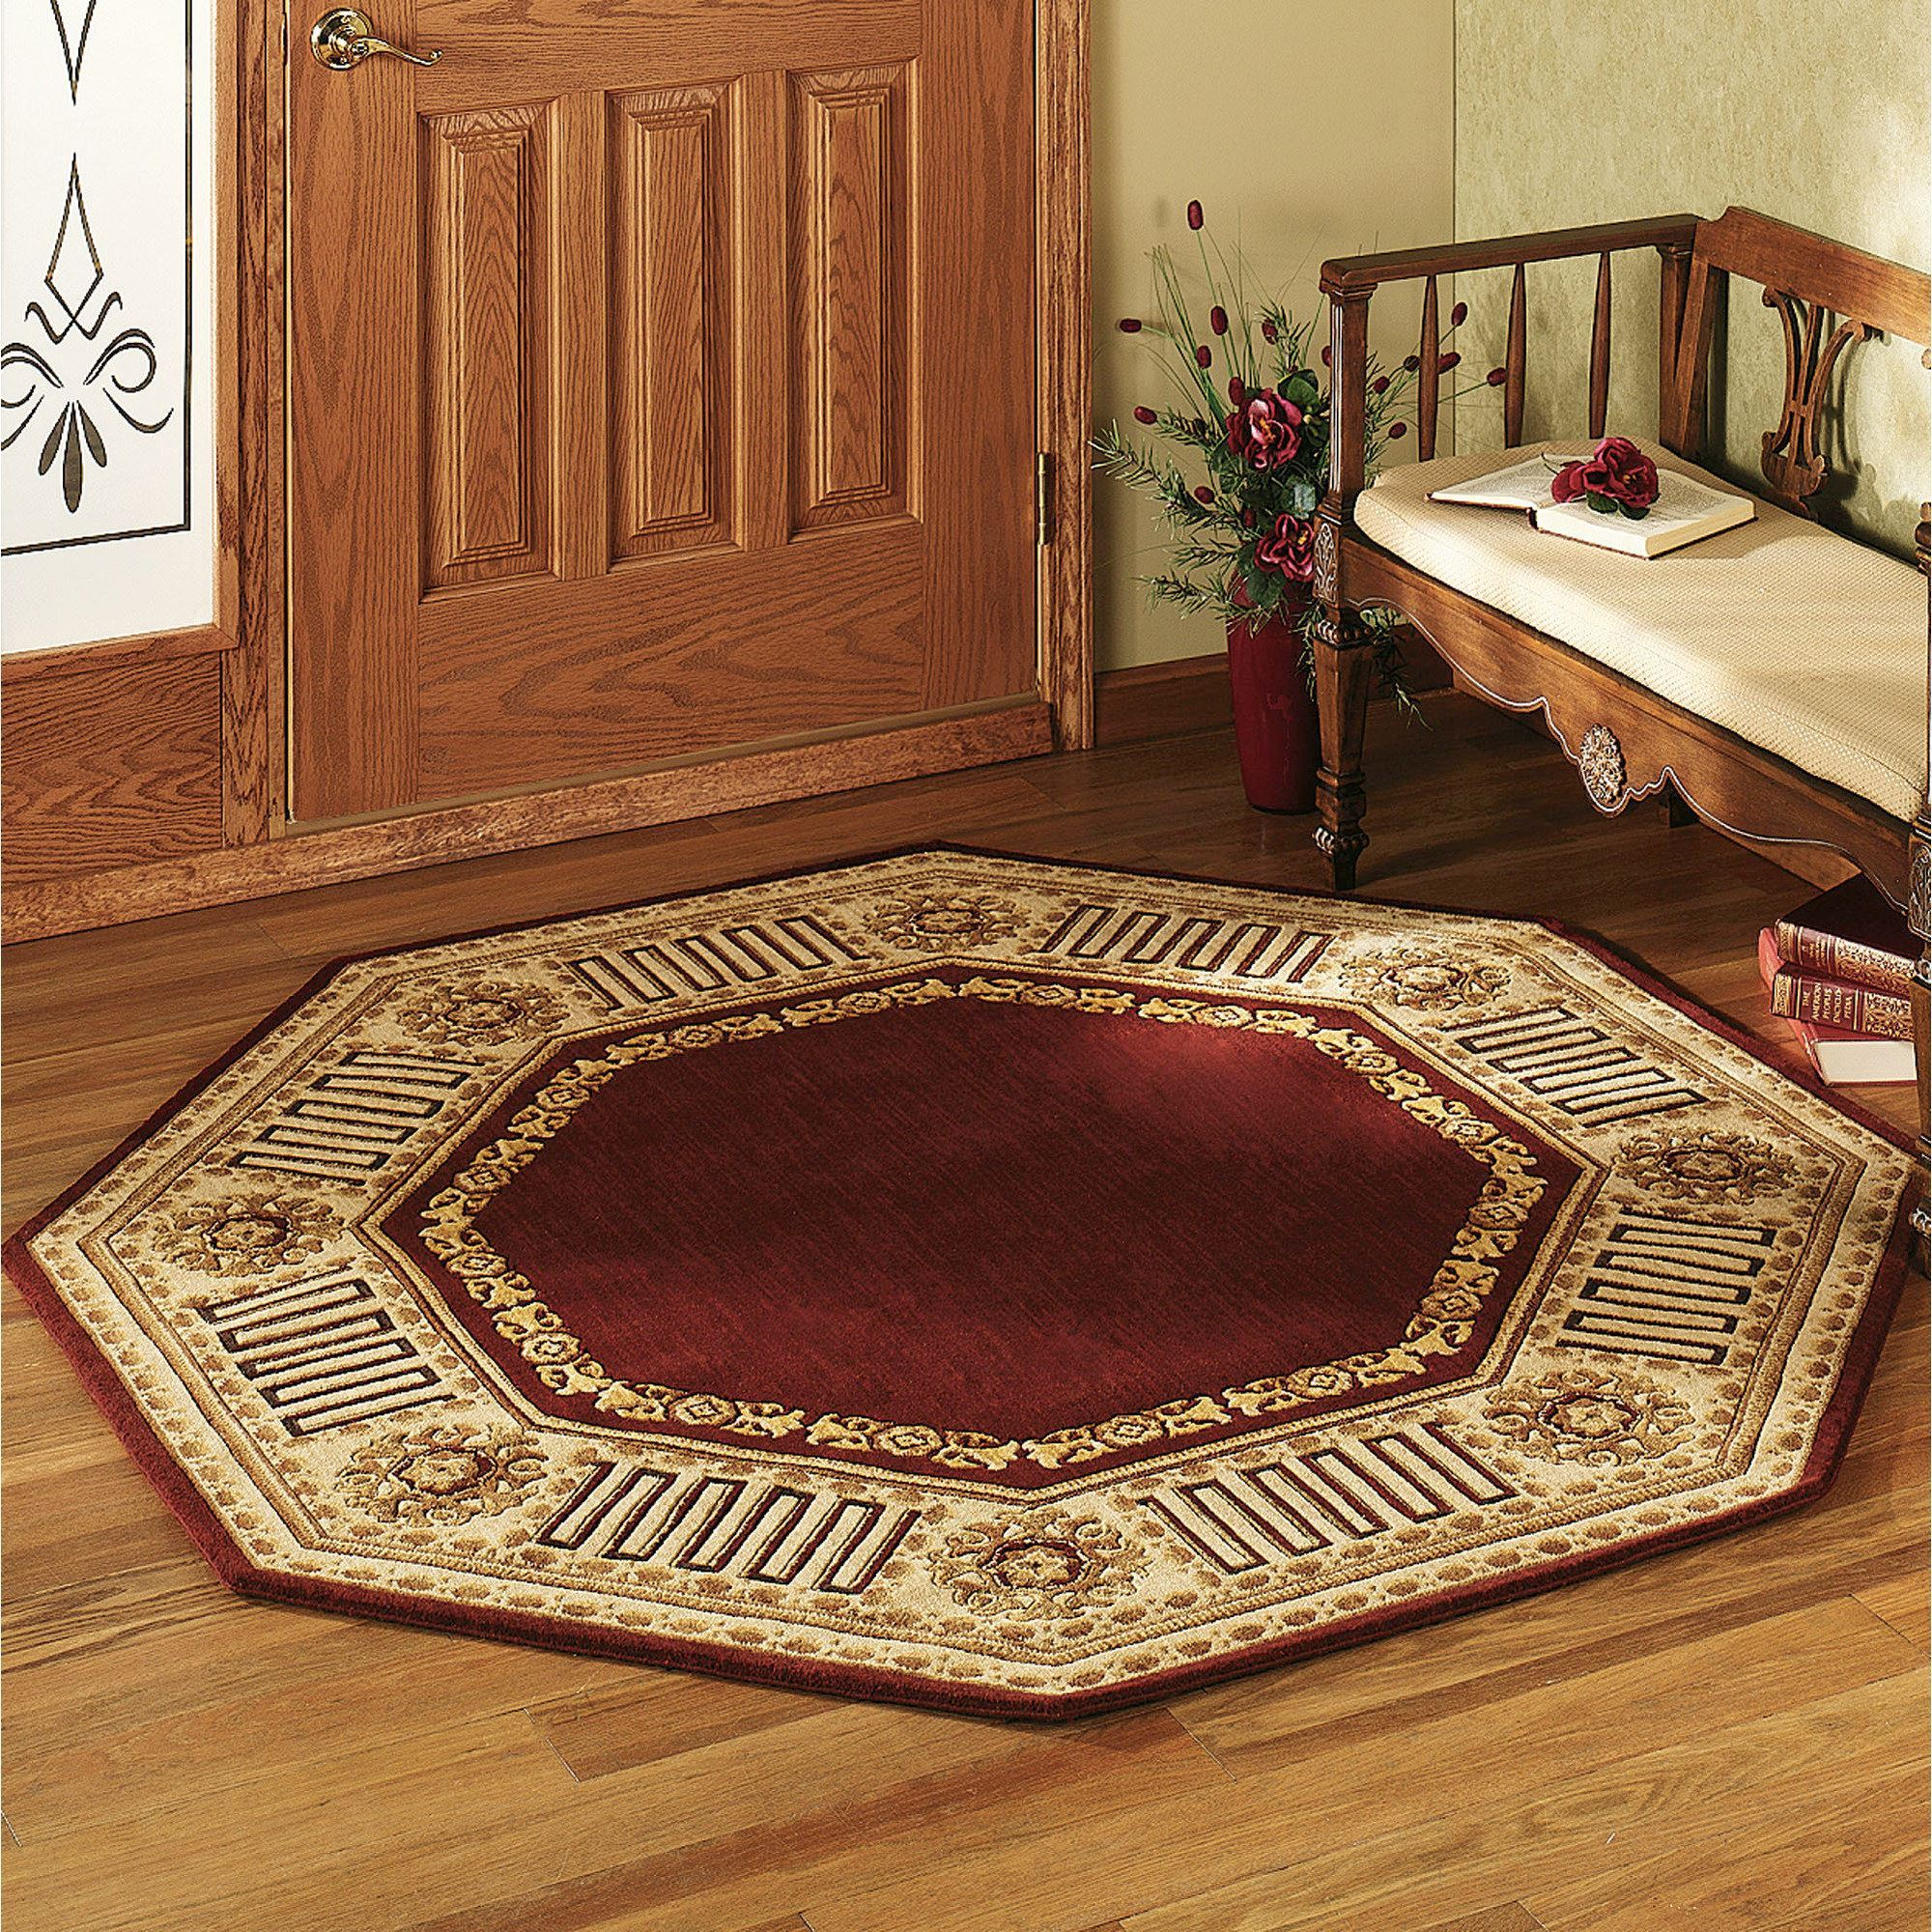 Greek Key Octagonal Rug